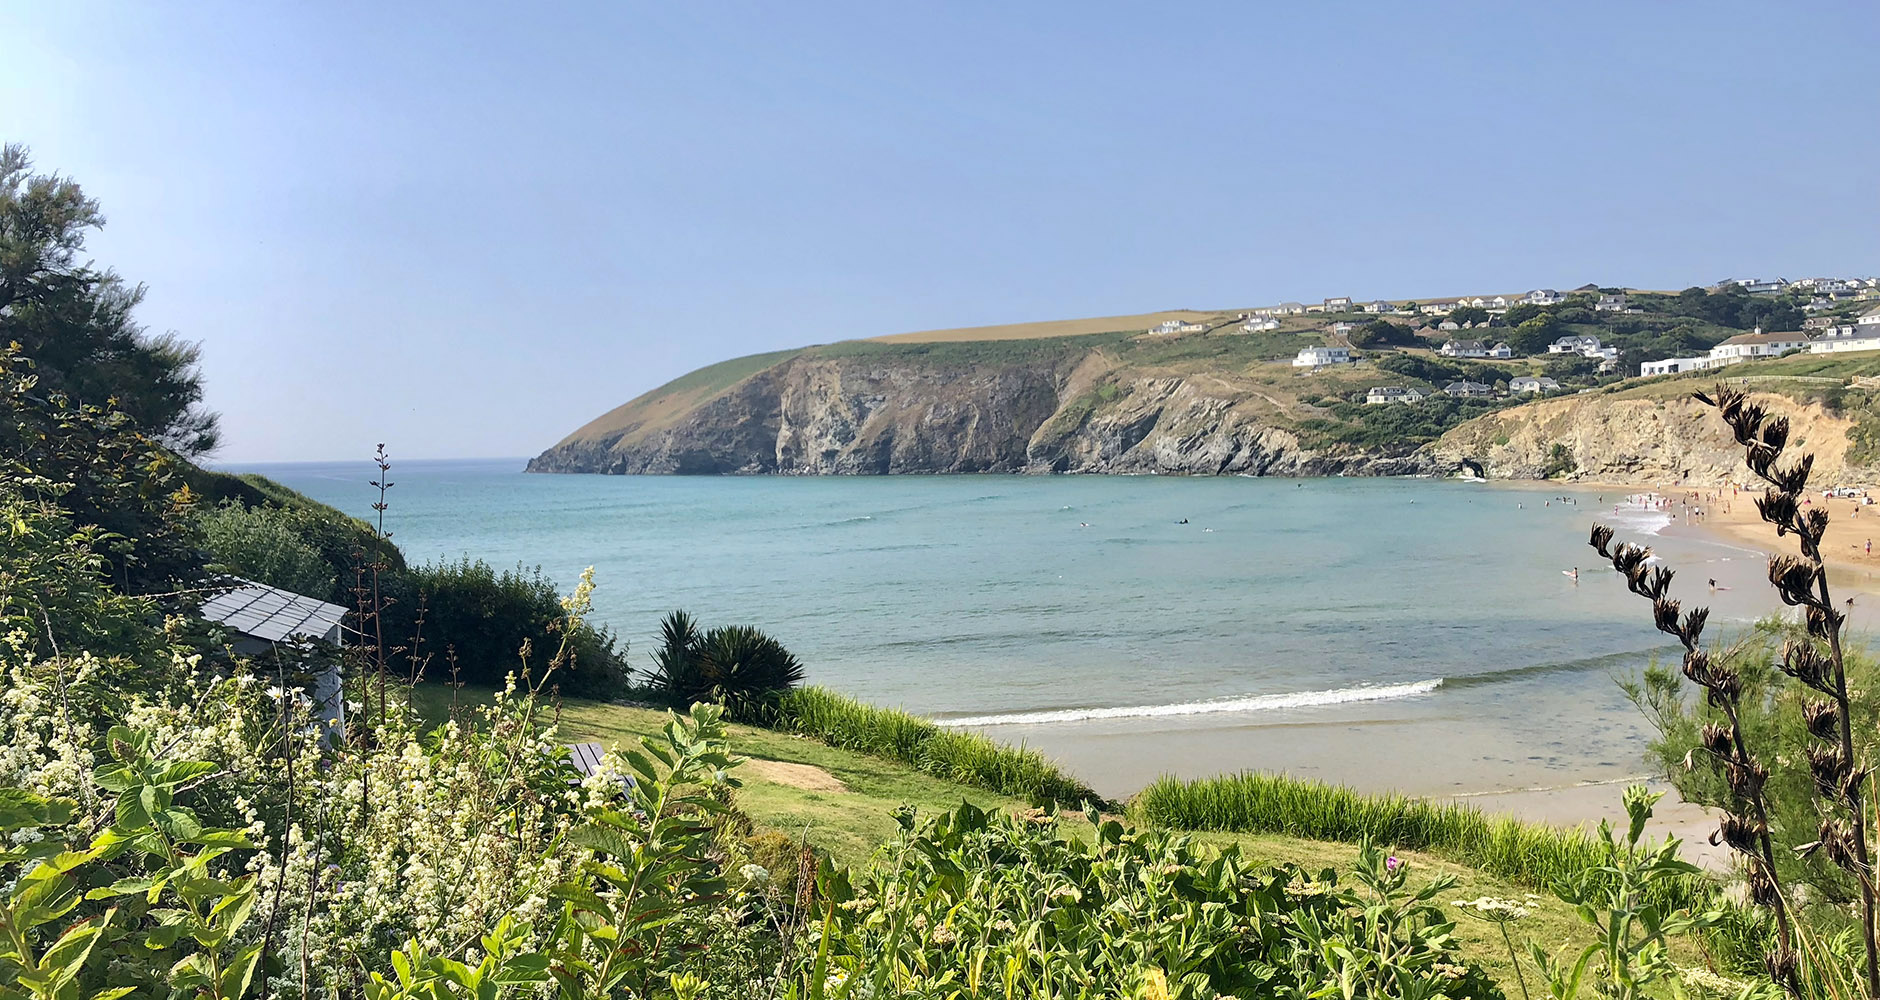 The beautiful beach in Mawgan Porth